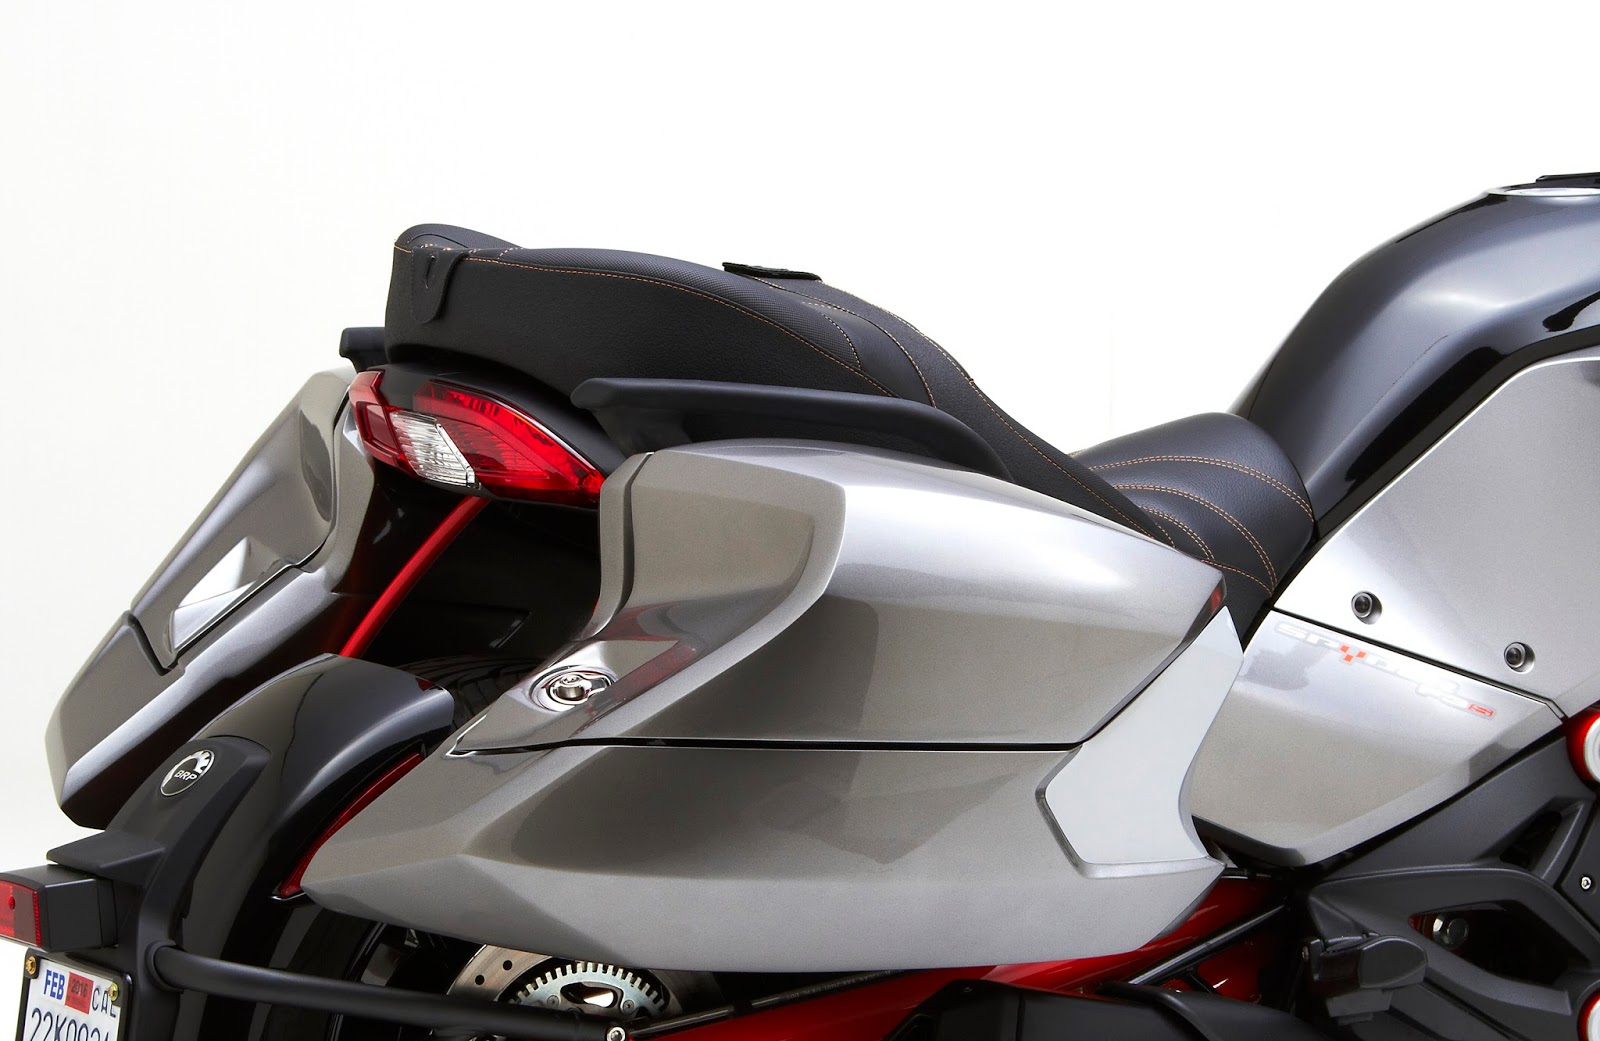 Installation on the f3 models is fairly simple and corbin supplies all required mounting brackets saddlebags